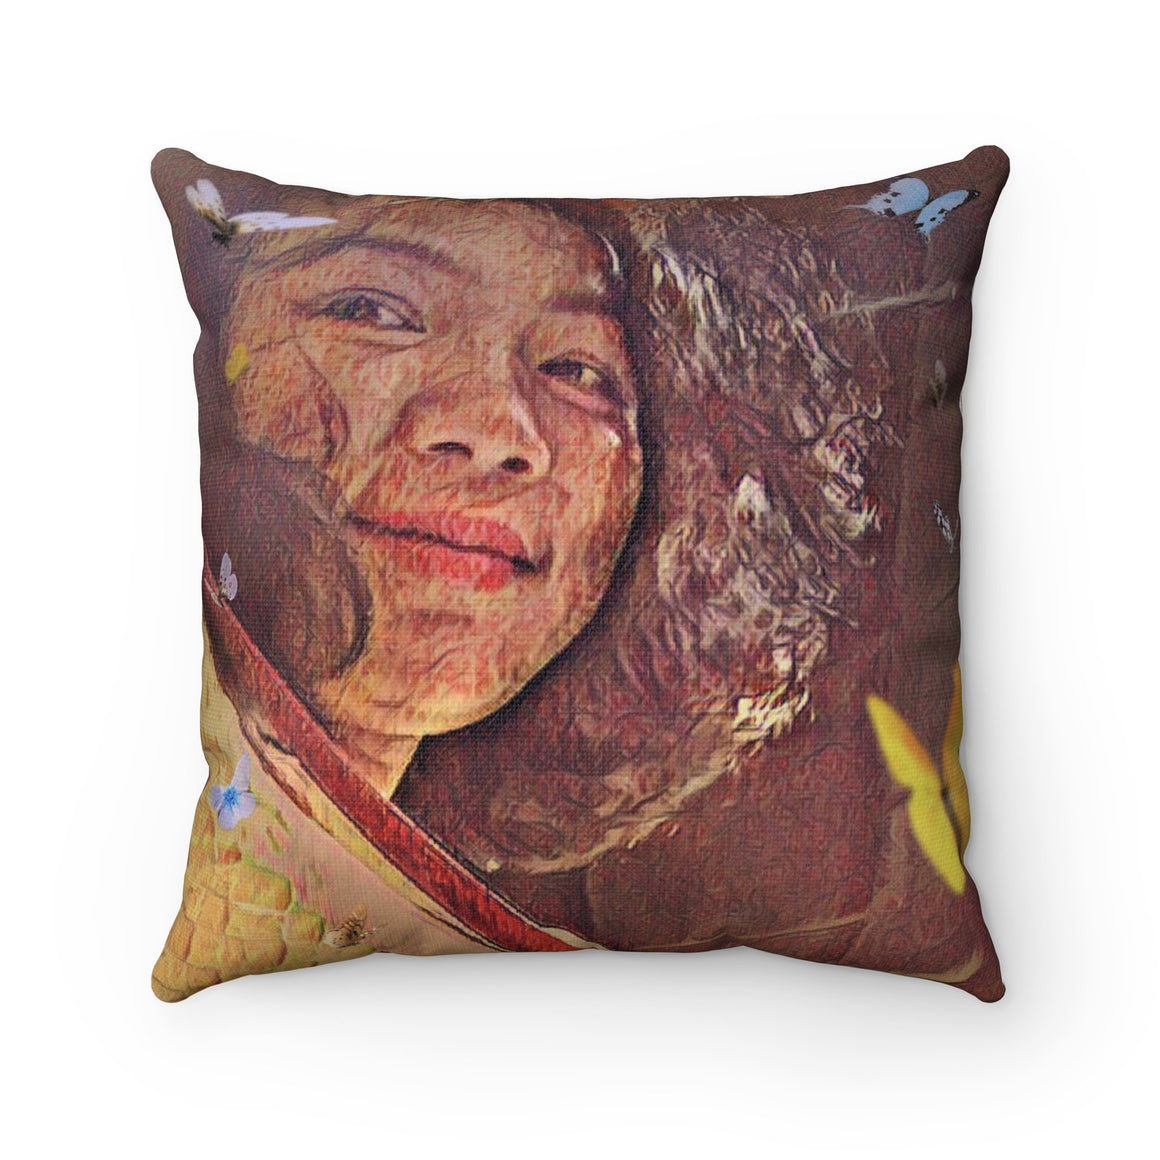 Levi Thang Vintage Face Design J Spun Polyester Square Pillow Case